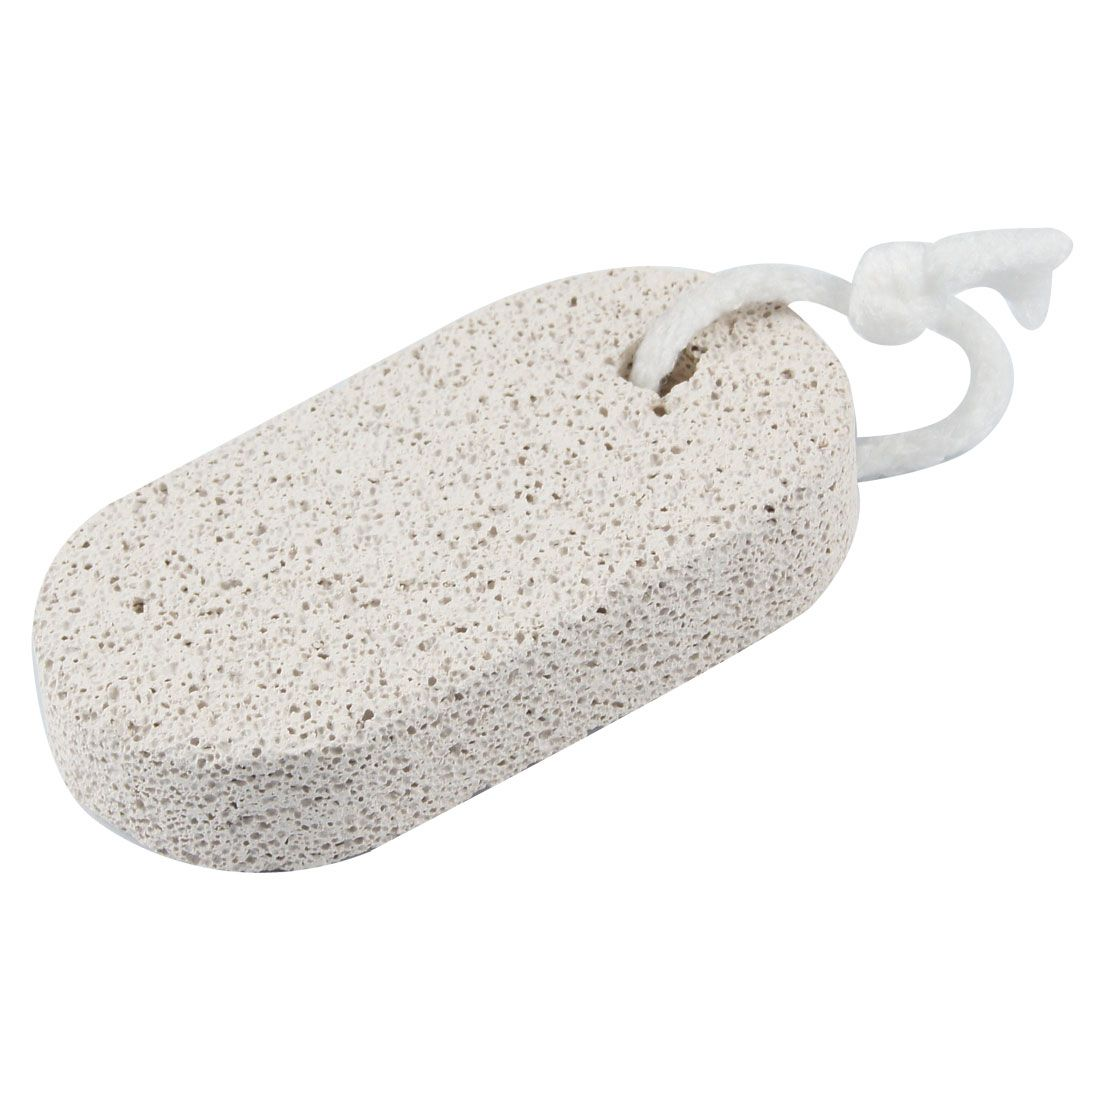 UXCELL Oval Shape Pumice Stone Foot Pedicure Tool Dead Skin Remover Sanding File